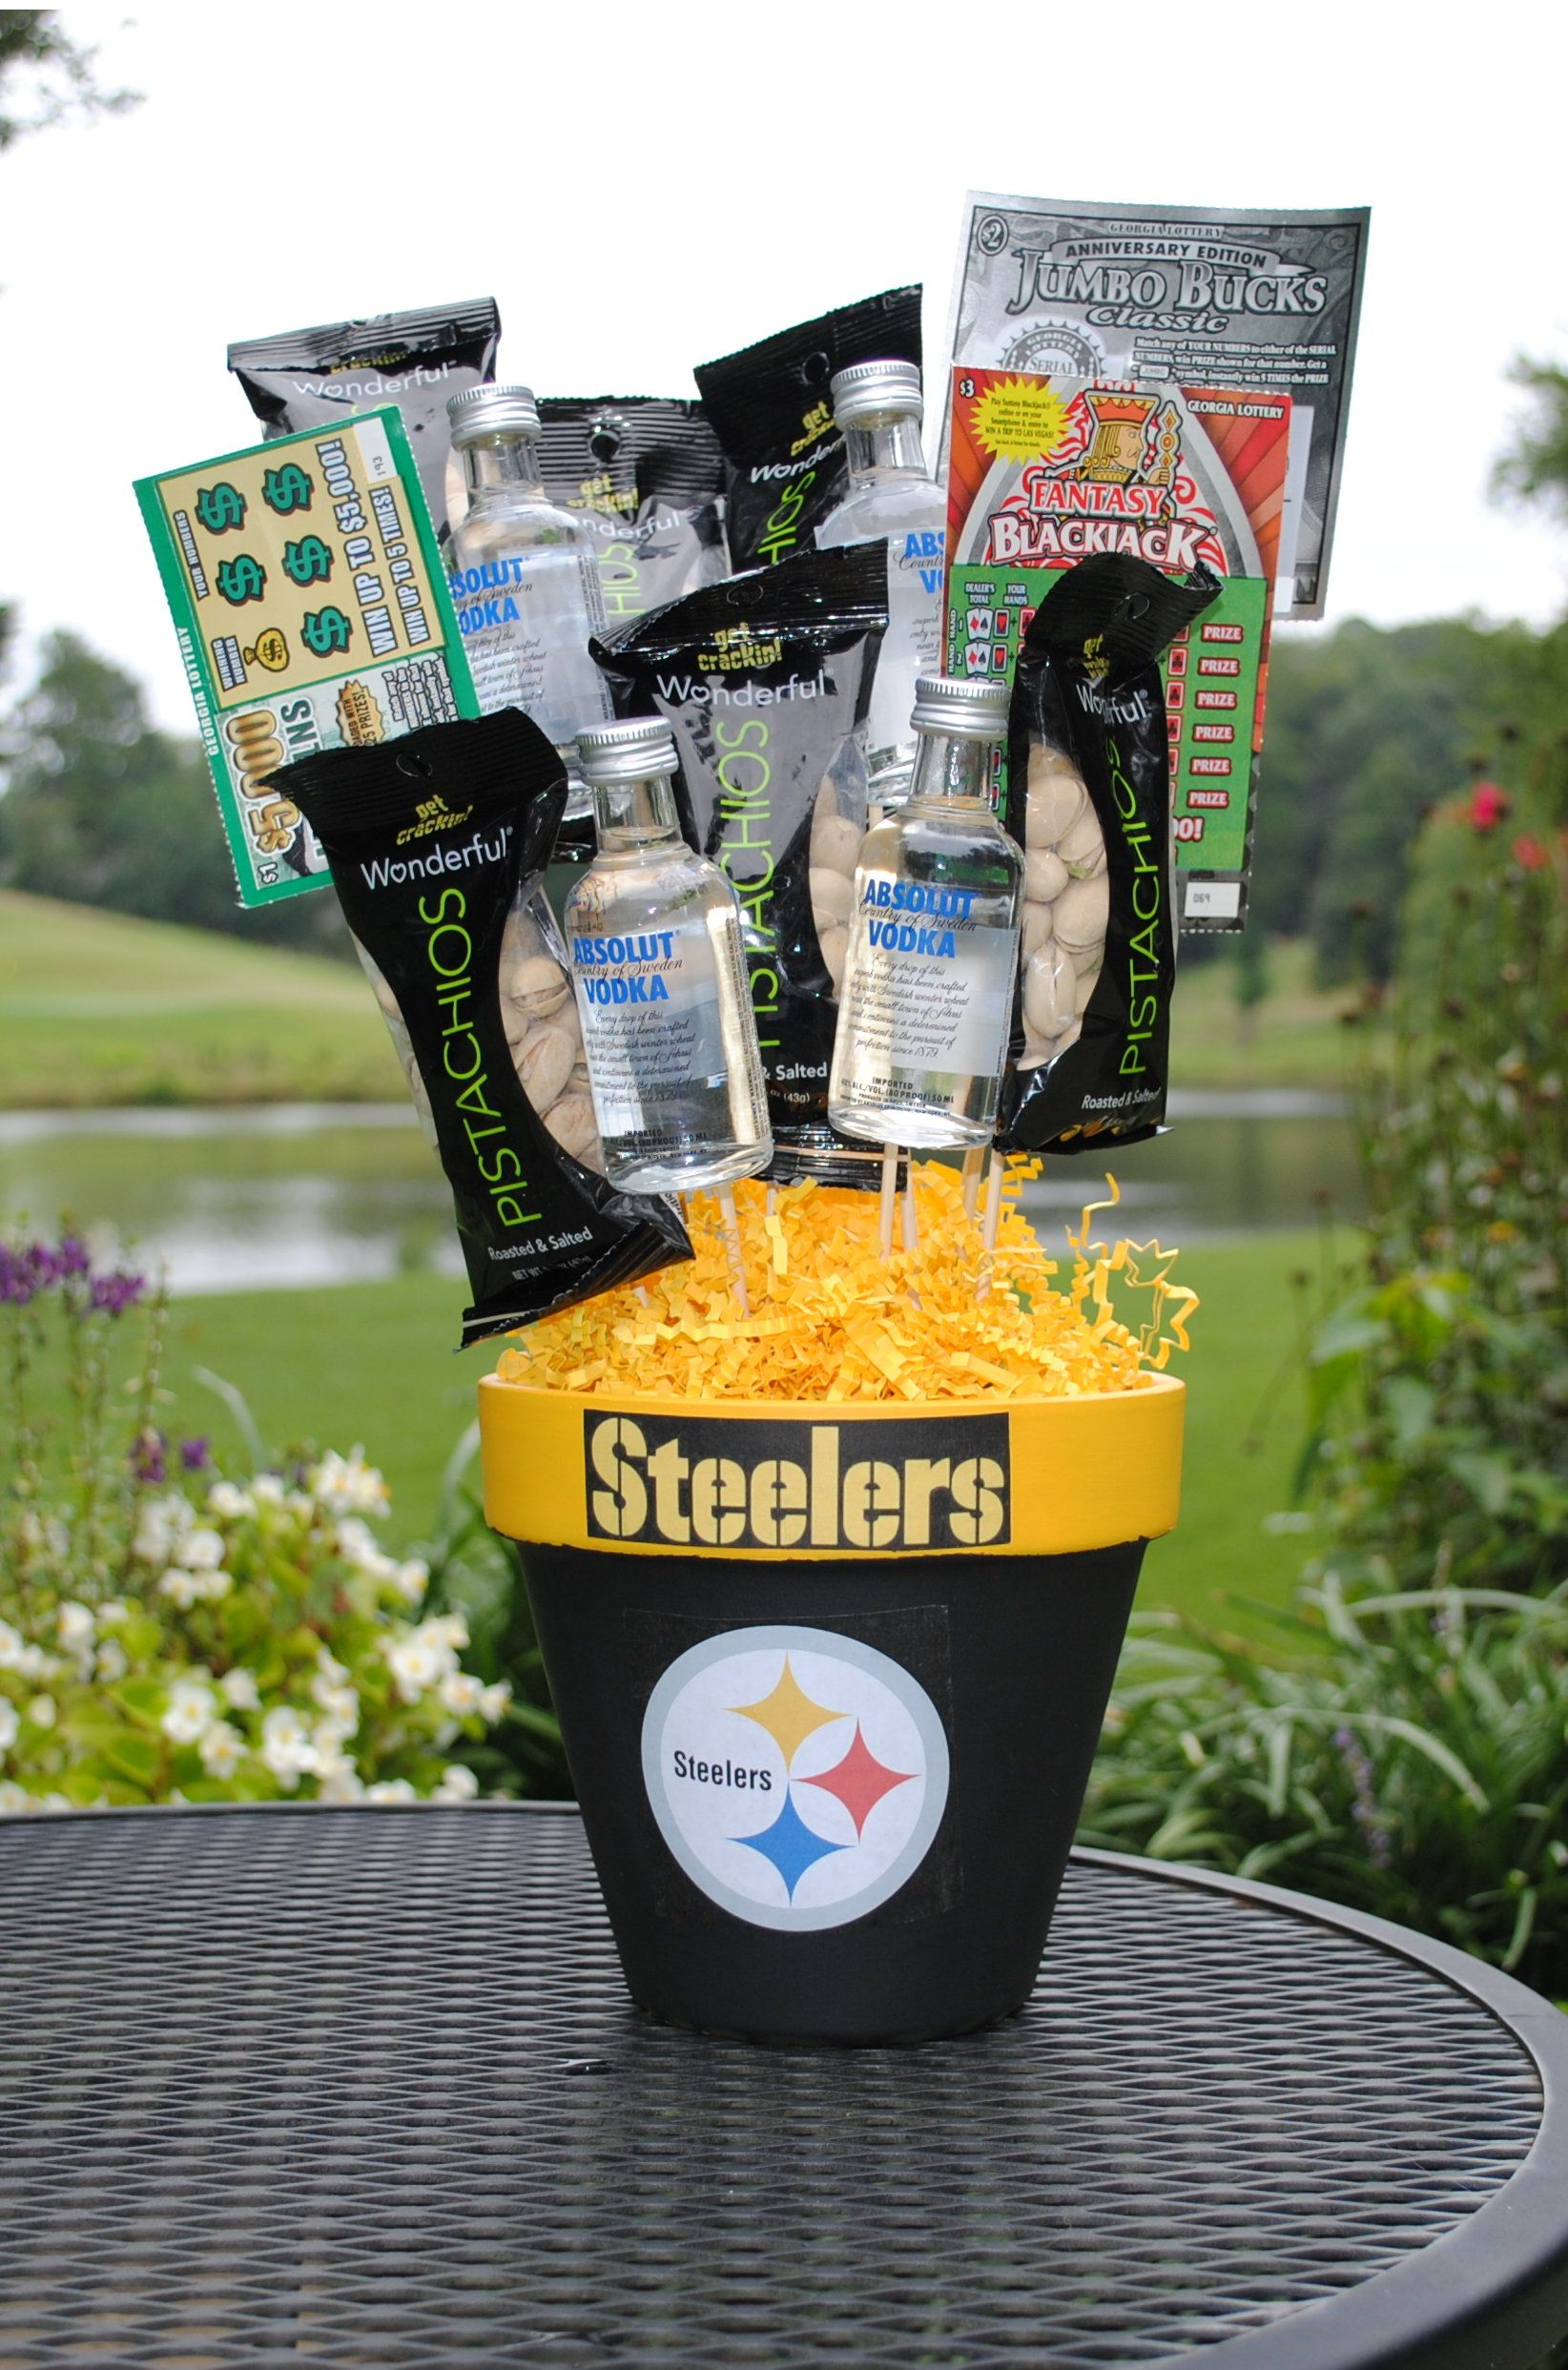 THE BEST GIFT FOR PITTSBURGH STEELERS FANS. The Pittsburgh Steelers are one of the most decorated franchises in the NFL. Ben Roethlisberger is an All-time great quarterback leading this great franchise. The Pittsburgh Steelers also have one of the most passionate fan bases in the league.